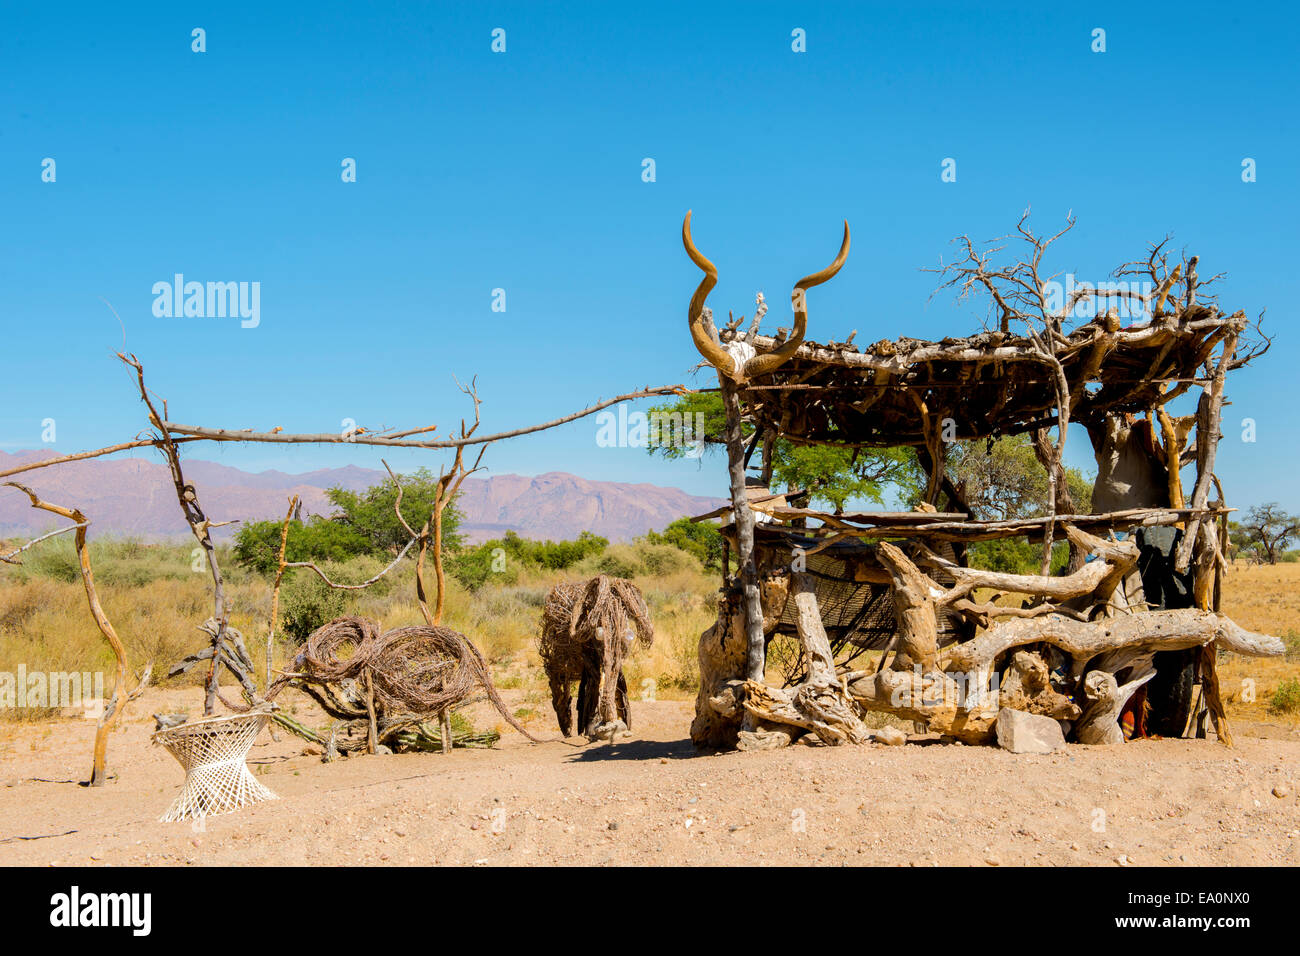 Souvenir sales on the roadside, near Twyfelfontein, Namibia, Africa - Stock Image